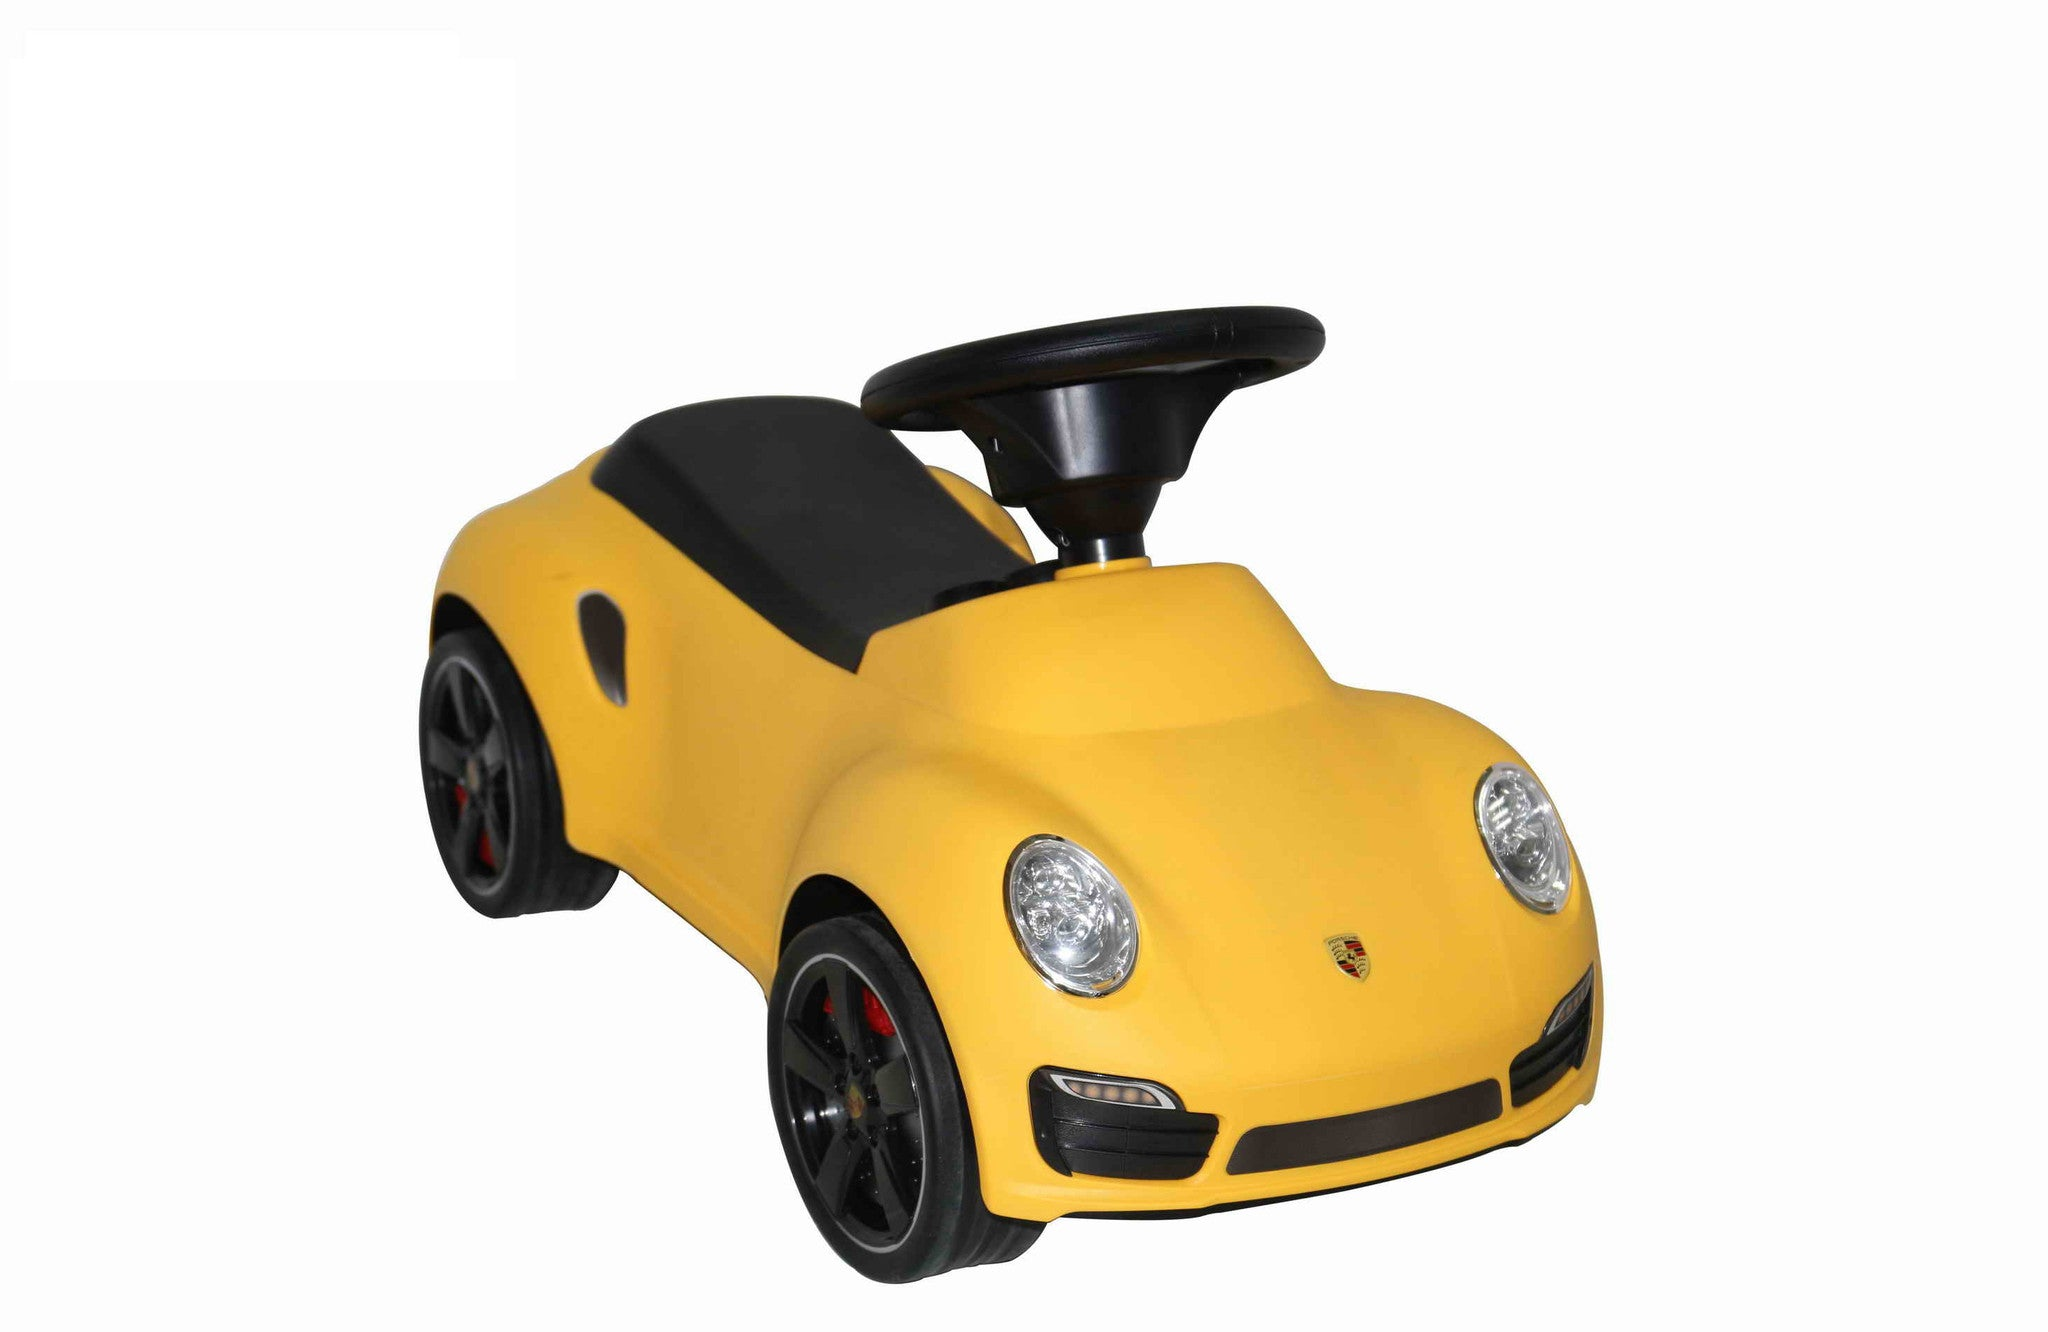 Licensed Porsche 911 Turbo Push Car Yellow - Buy Online on My Tiny ...